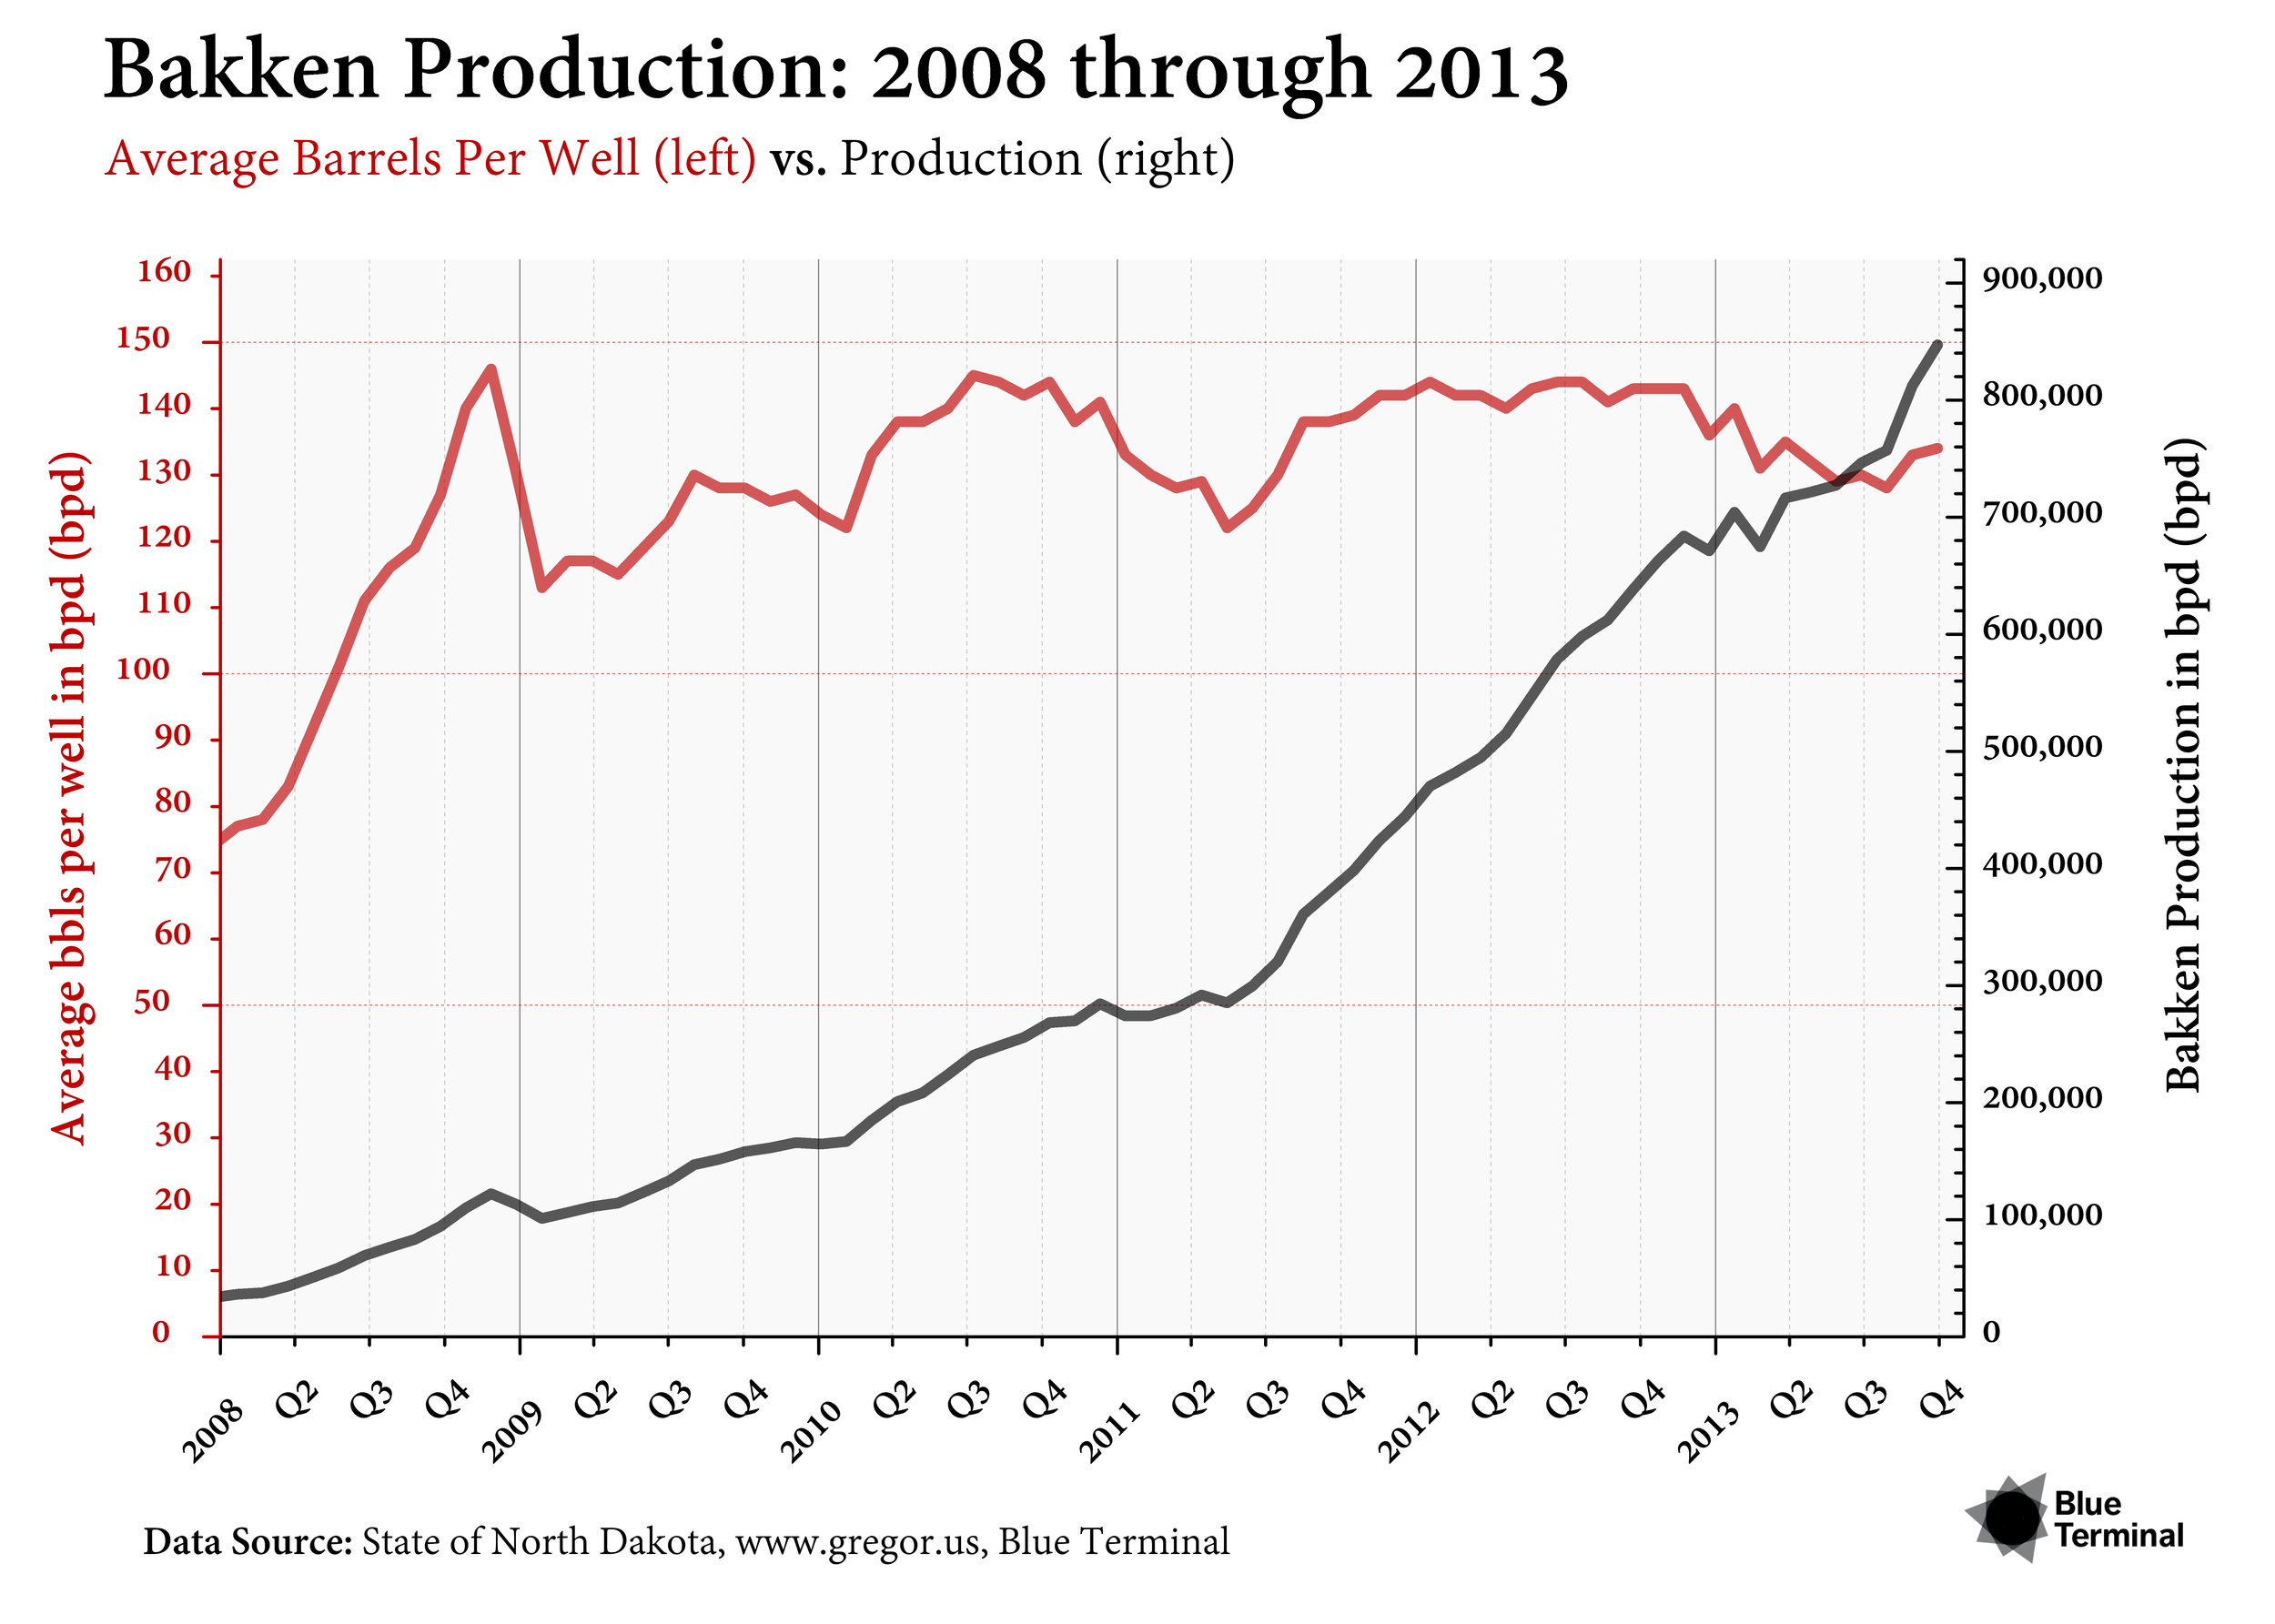 EXAMPLE #5 - BAKKEN PRODUCTION: 2008 THROUGH 2013 Release Date : January 2014   ZOOMTo show the contribution of average barrel production per well in North Dakota's Bakken shaleplay to the cumulative production, we use two colours and two lines. On the right, a slightlyoffset y-axis label at each 50 barrels per day (bpd). The x-axis breaks each year into quarters.